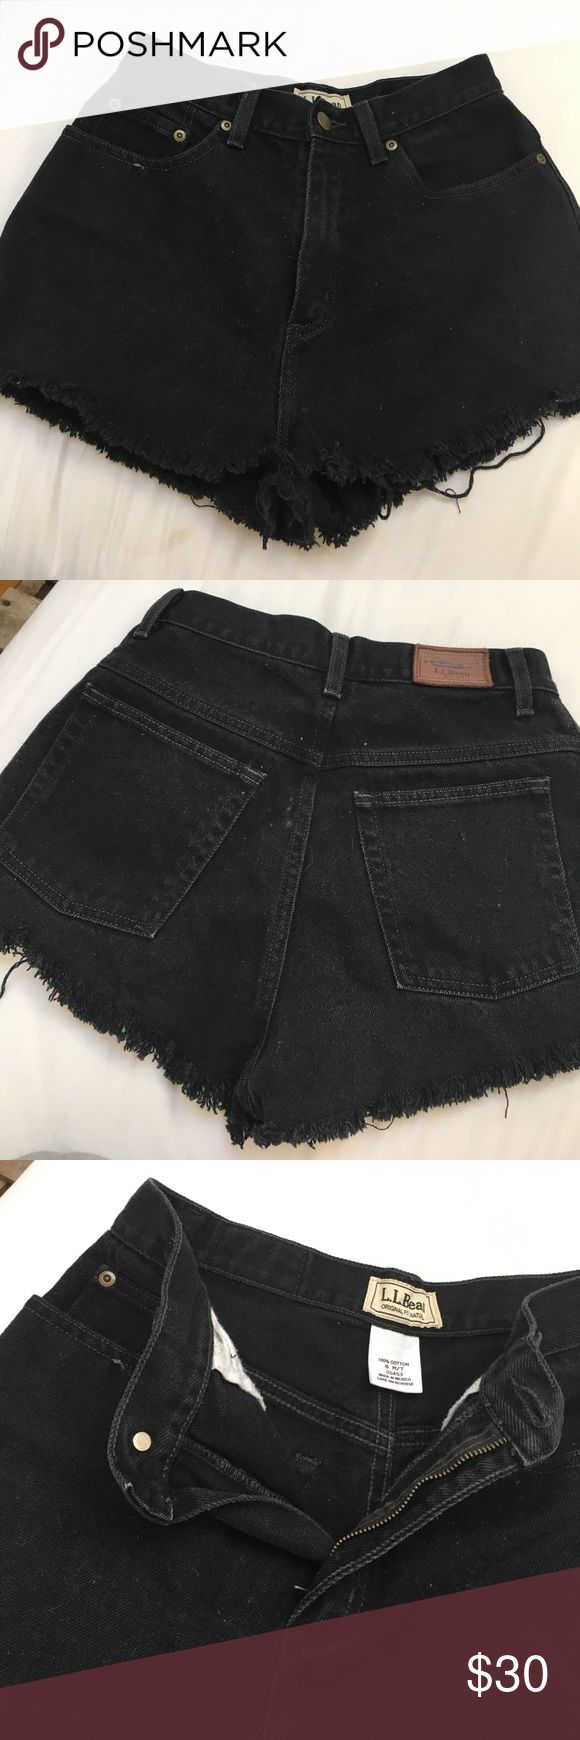 Cutoff jean shorts Cute black cutoff jean shorts made from L.L. Bean jeans. I'm a 25 in jeans and they fit me 🙂🙂🙂 L.L. Bean Shorts Jean Shorts